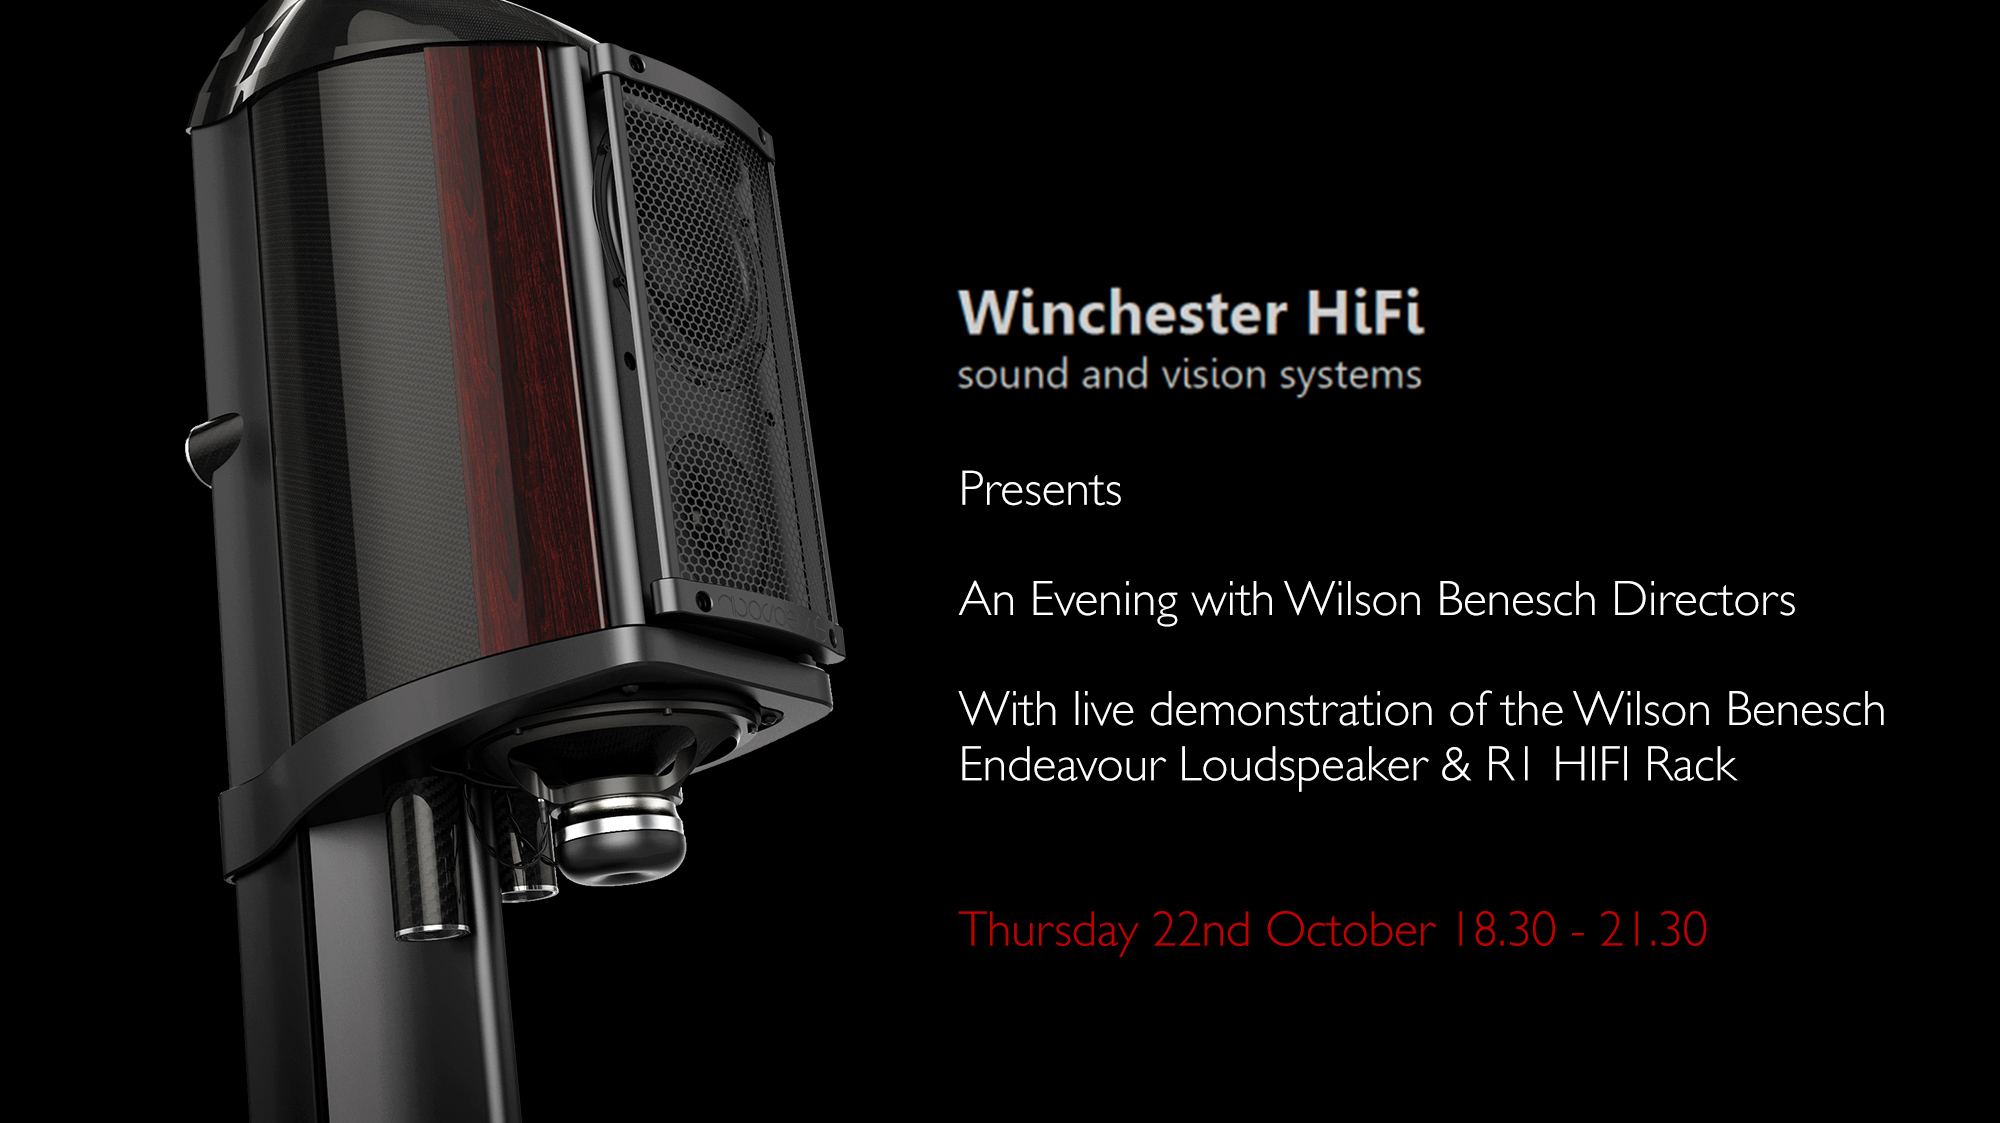 Wilson Benesch - Loudspeaker - Carbon Fibre - Innovation - Geometry Series - Endeavour - R1 - HIFI - Rack